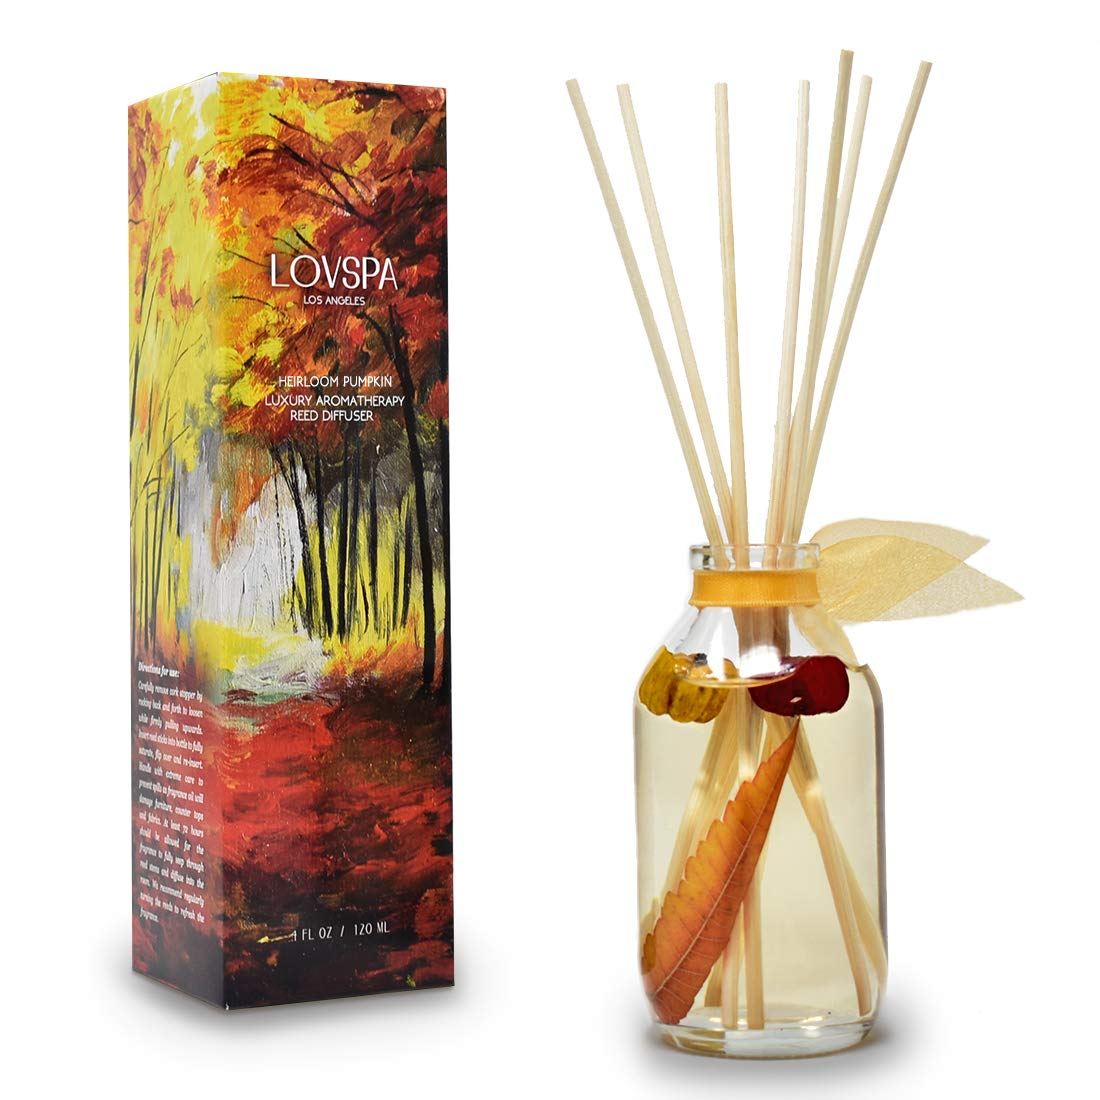 LOVSPA Heirloom Pumpkin Reed Diffuser Sticks Set with Cinnamon, Nutmeg, Warm Clove & Creamy Vanilla, Mini Pumpkin Pods and Fall Leaves Inside The Bottle, Comforting Scent for Autumn by LOVSPA